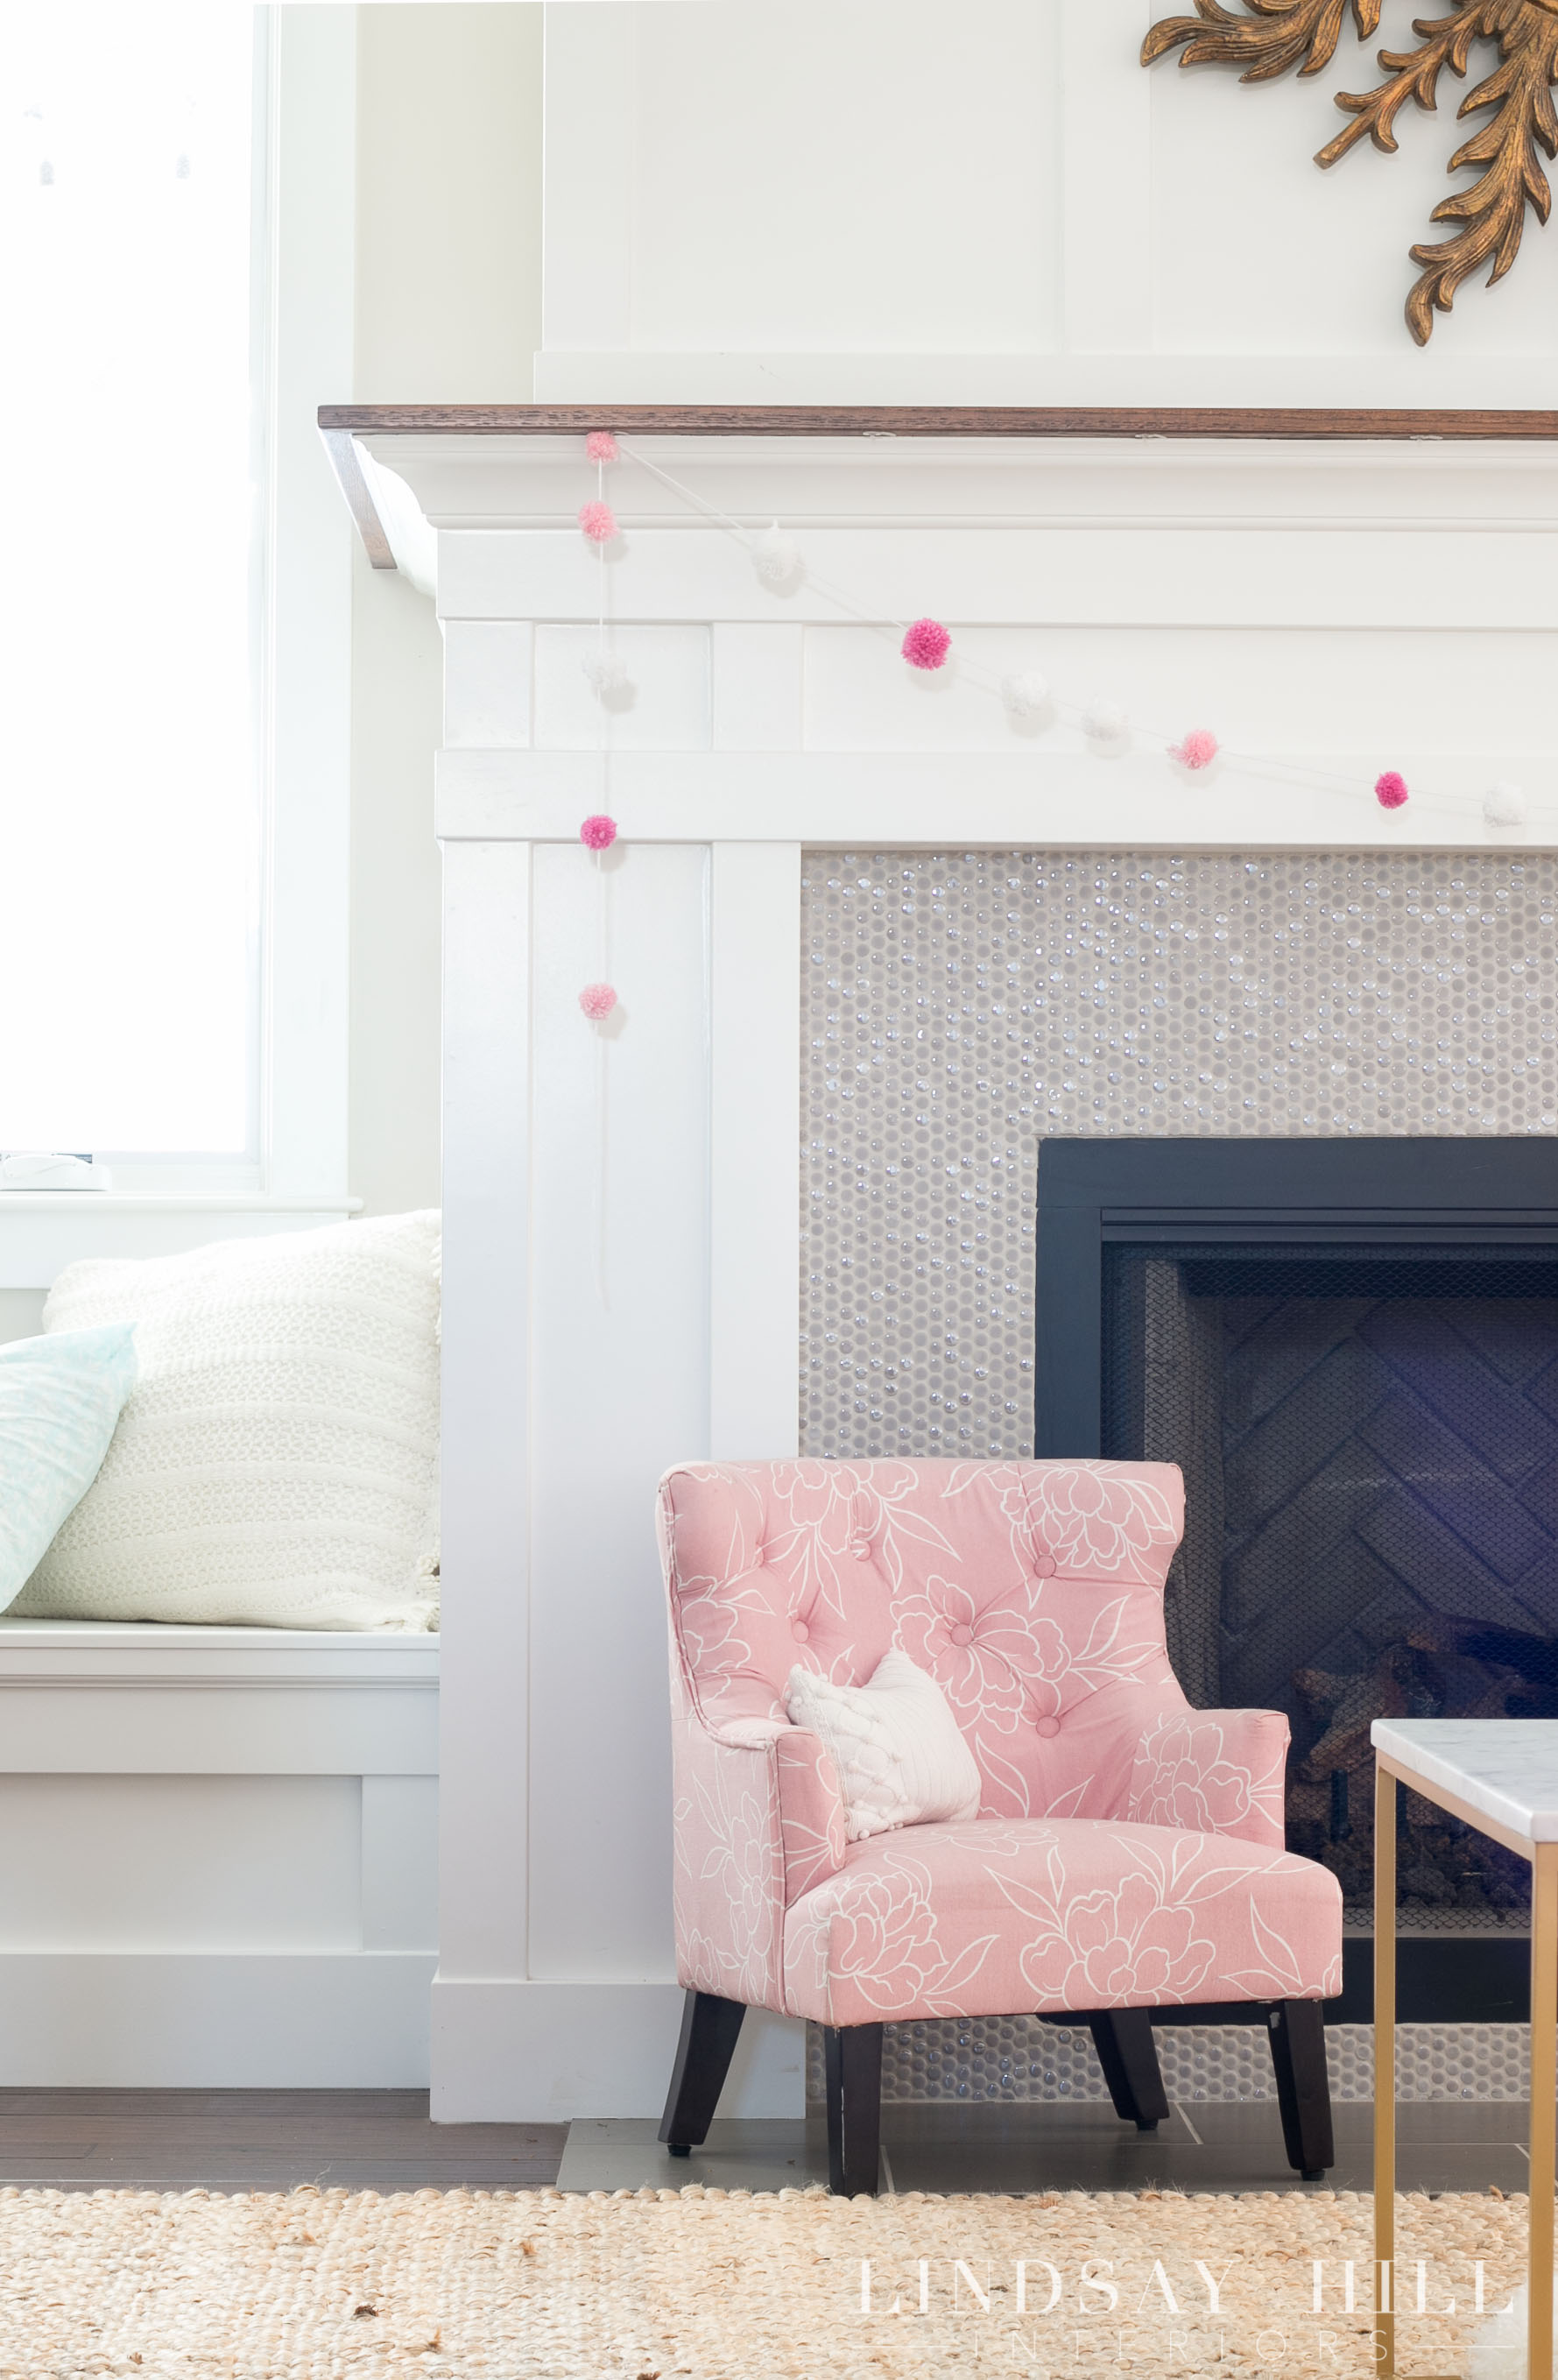 lindsay hill interiors simple valentine's day decor fireplace